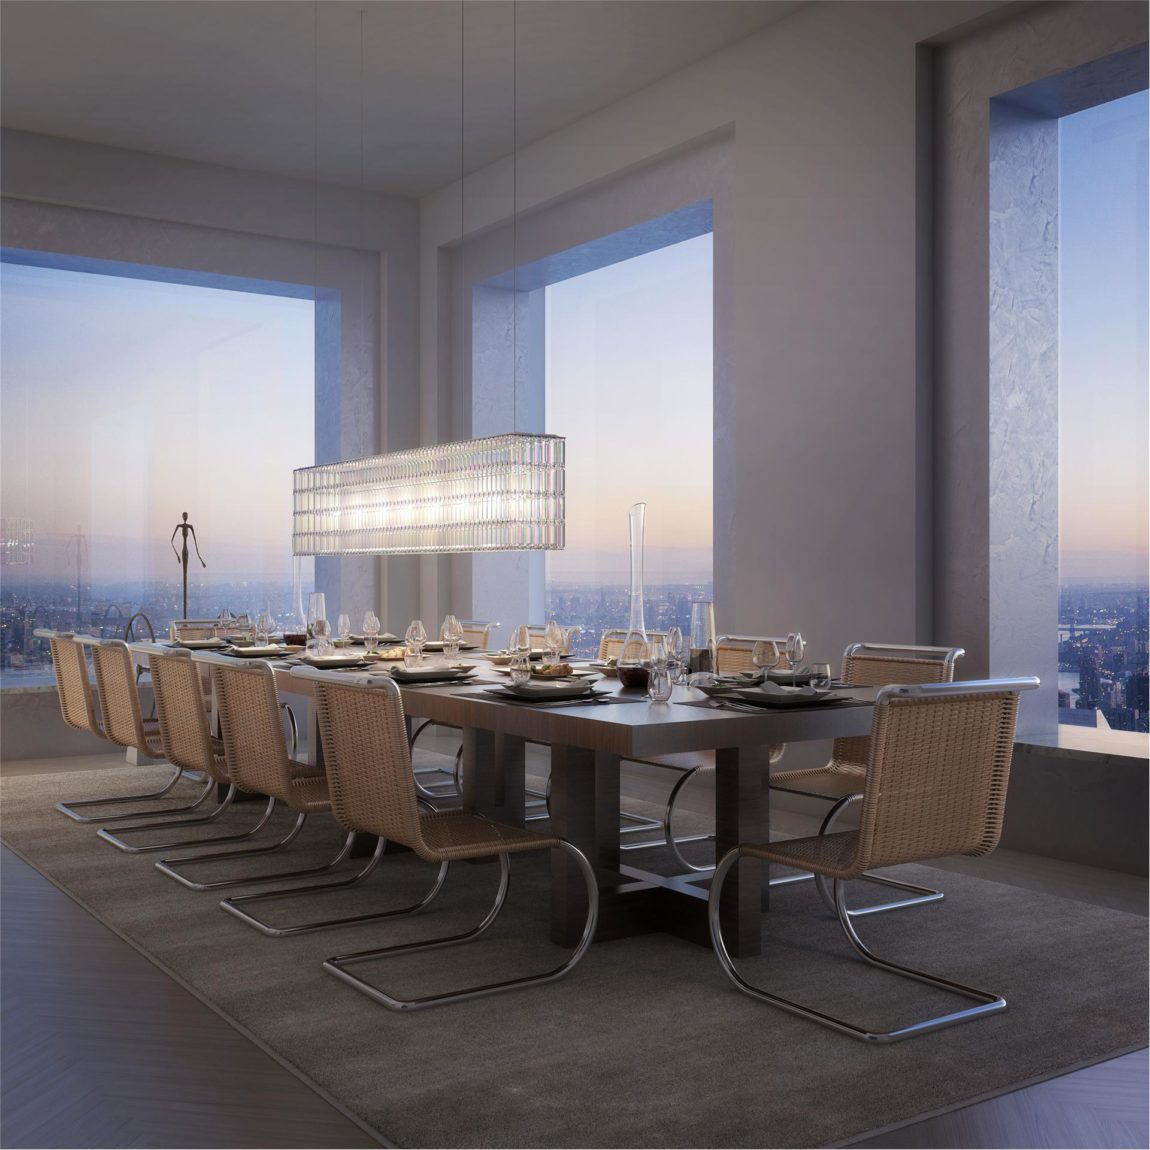 What kind of Penthouse Does $95 Million Buy in NYC? (3)